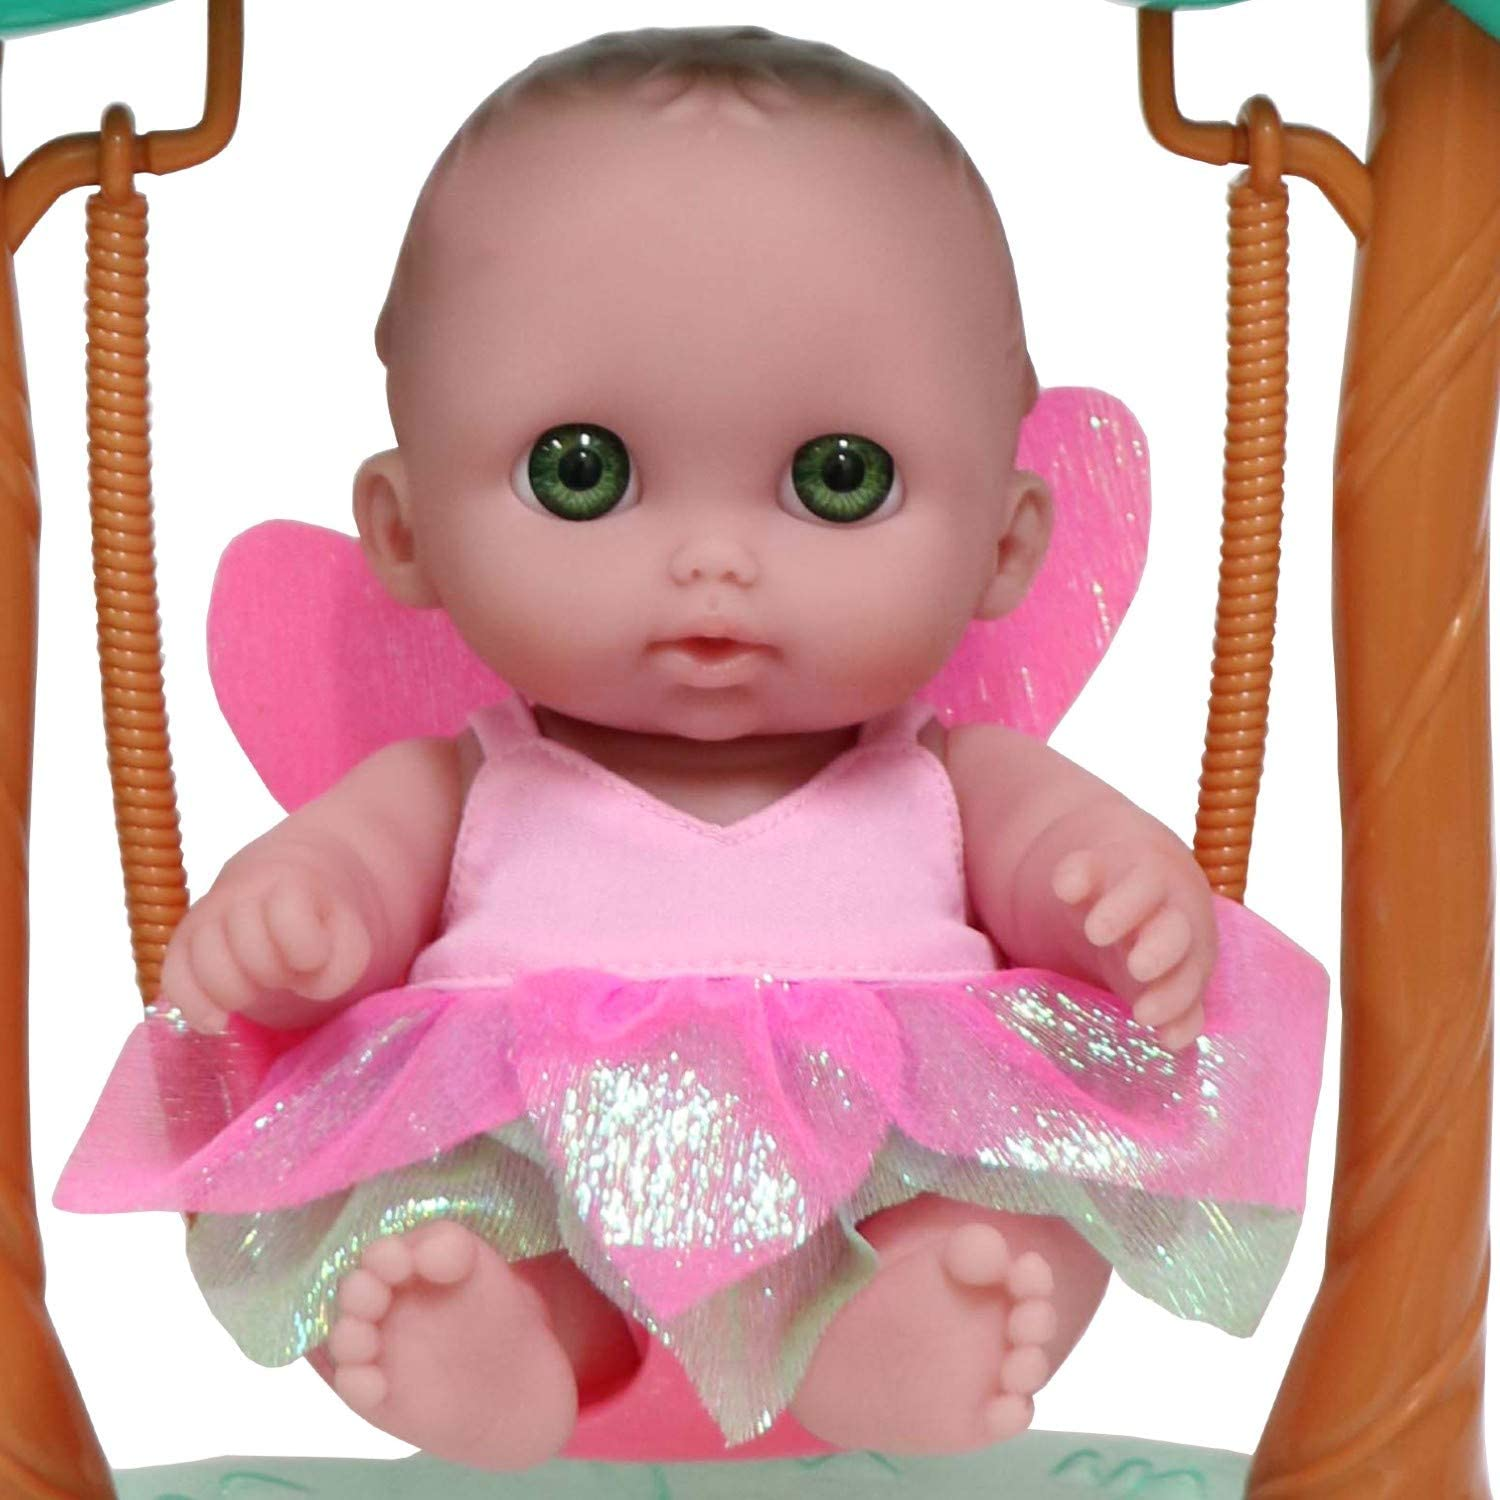 JC Toys Green Fairy Swing Set Featuring Lil Cutesies 8.5 All Vinyl Doll  and her Unicorn Friend